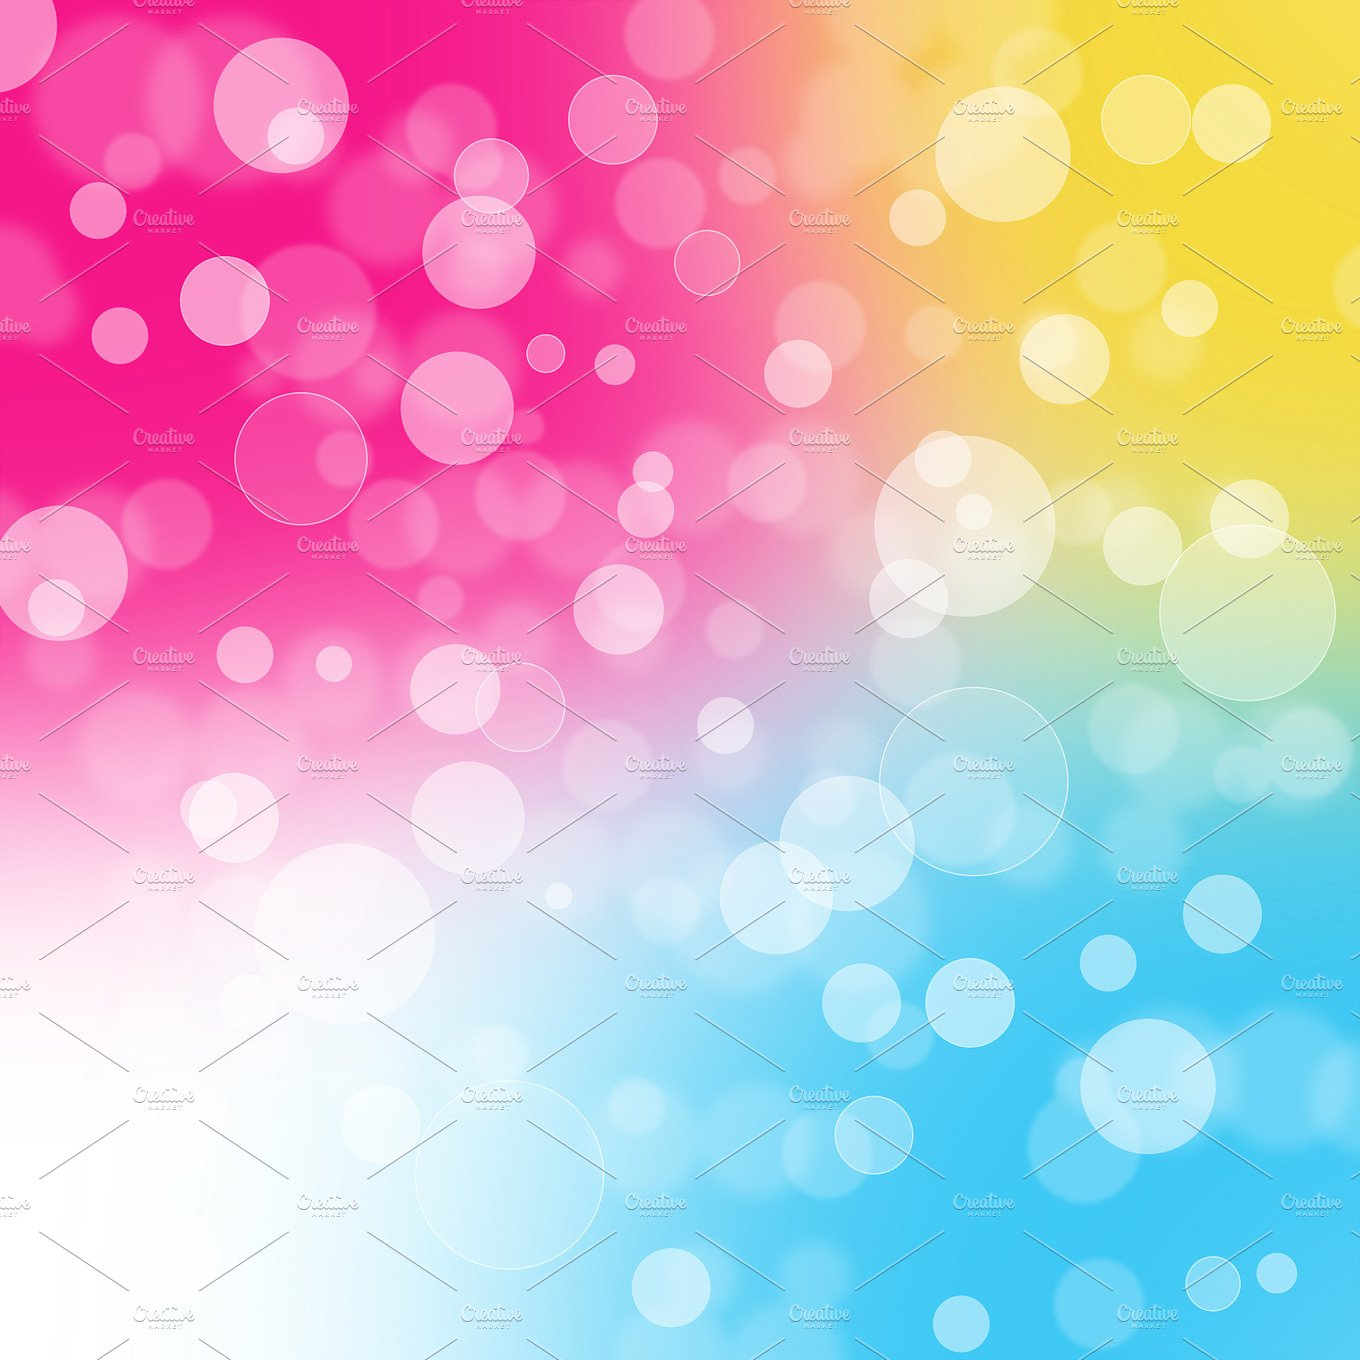 18 Best Tumblr Wallpaper Images On Pinterest: Colorful Abstract Background